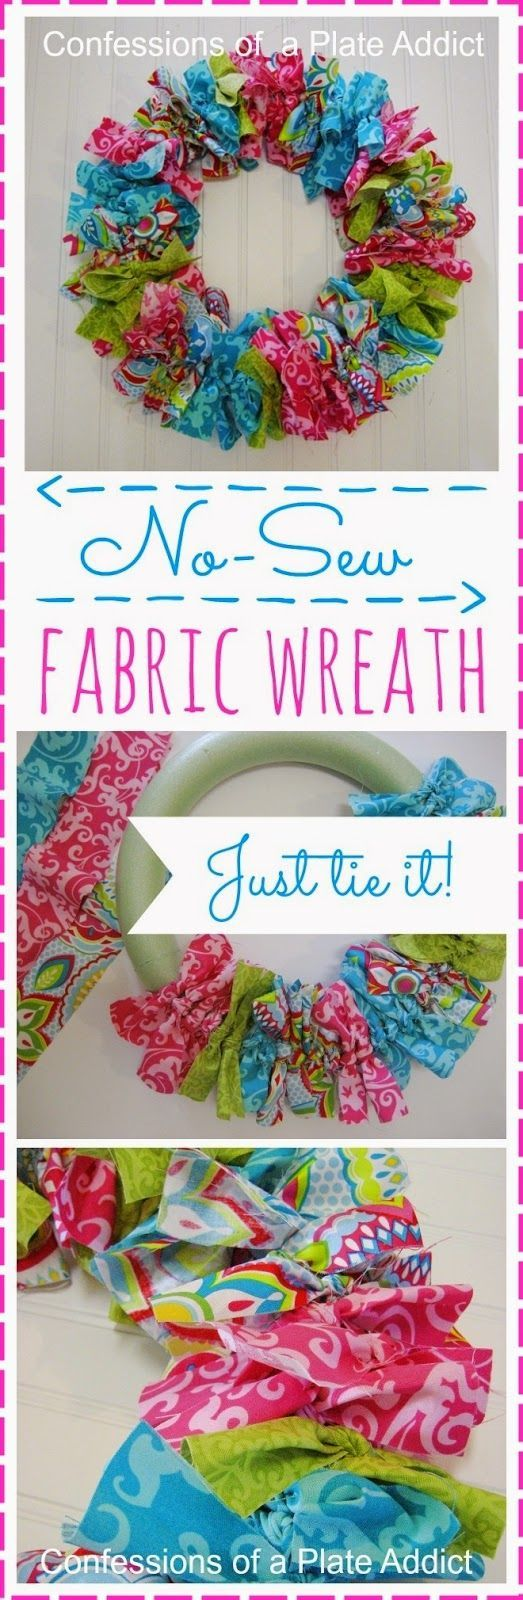 How to Make an Easy No-Sew Fabric Wreath                                                                                                                                                                                 More